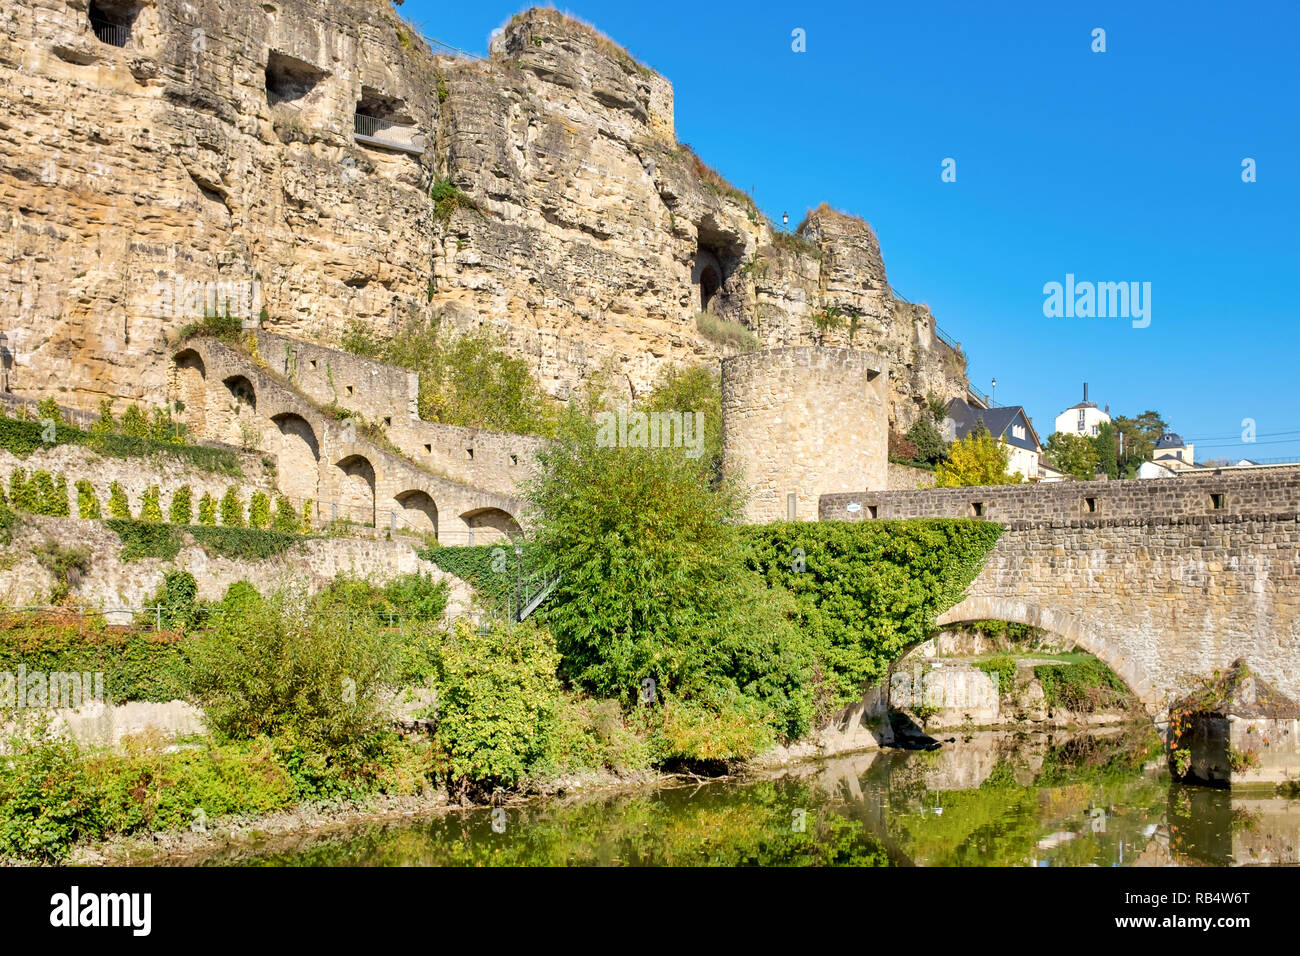 The Bock is a promontory in the north-eastern corner of Luxembourg City's old historical district, Luxembourg City - Stock Image